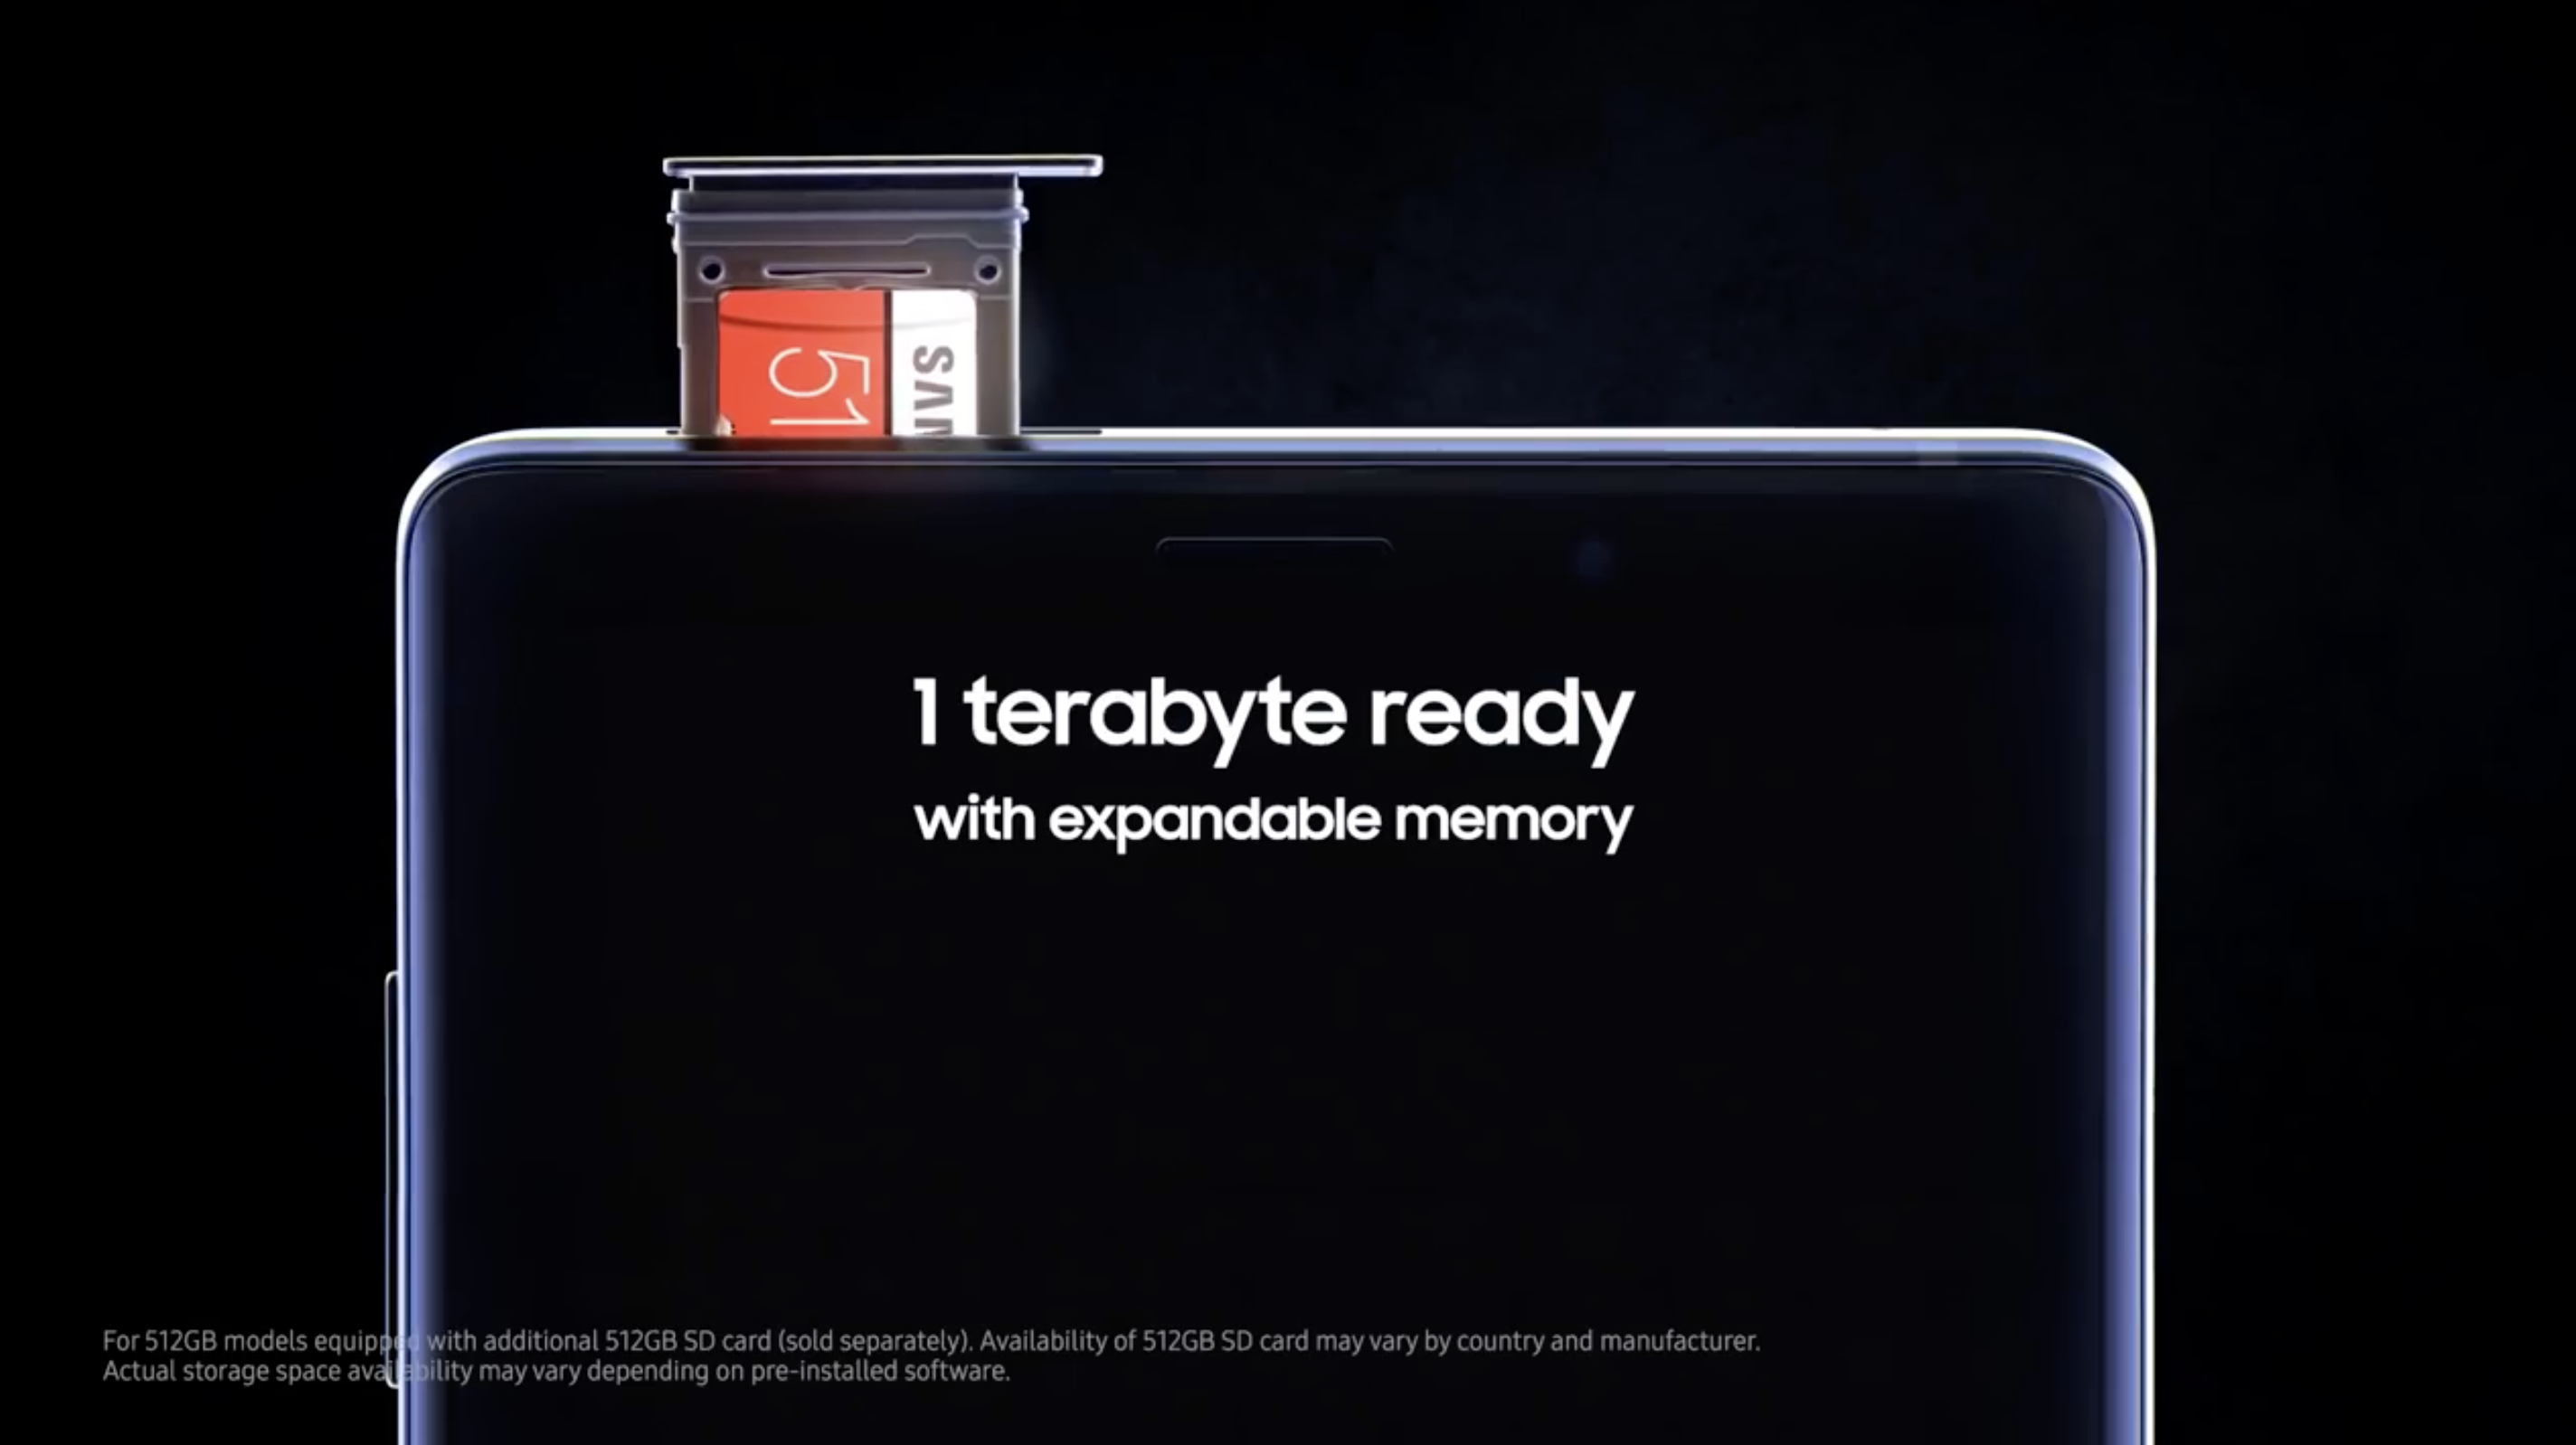 The Network posted a promotional video of the Samsung Galaxy Note 9